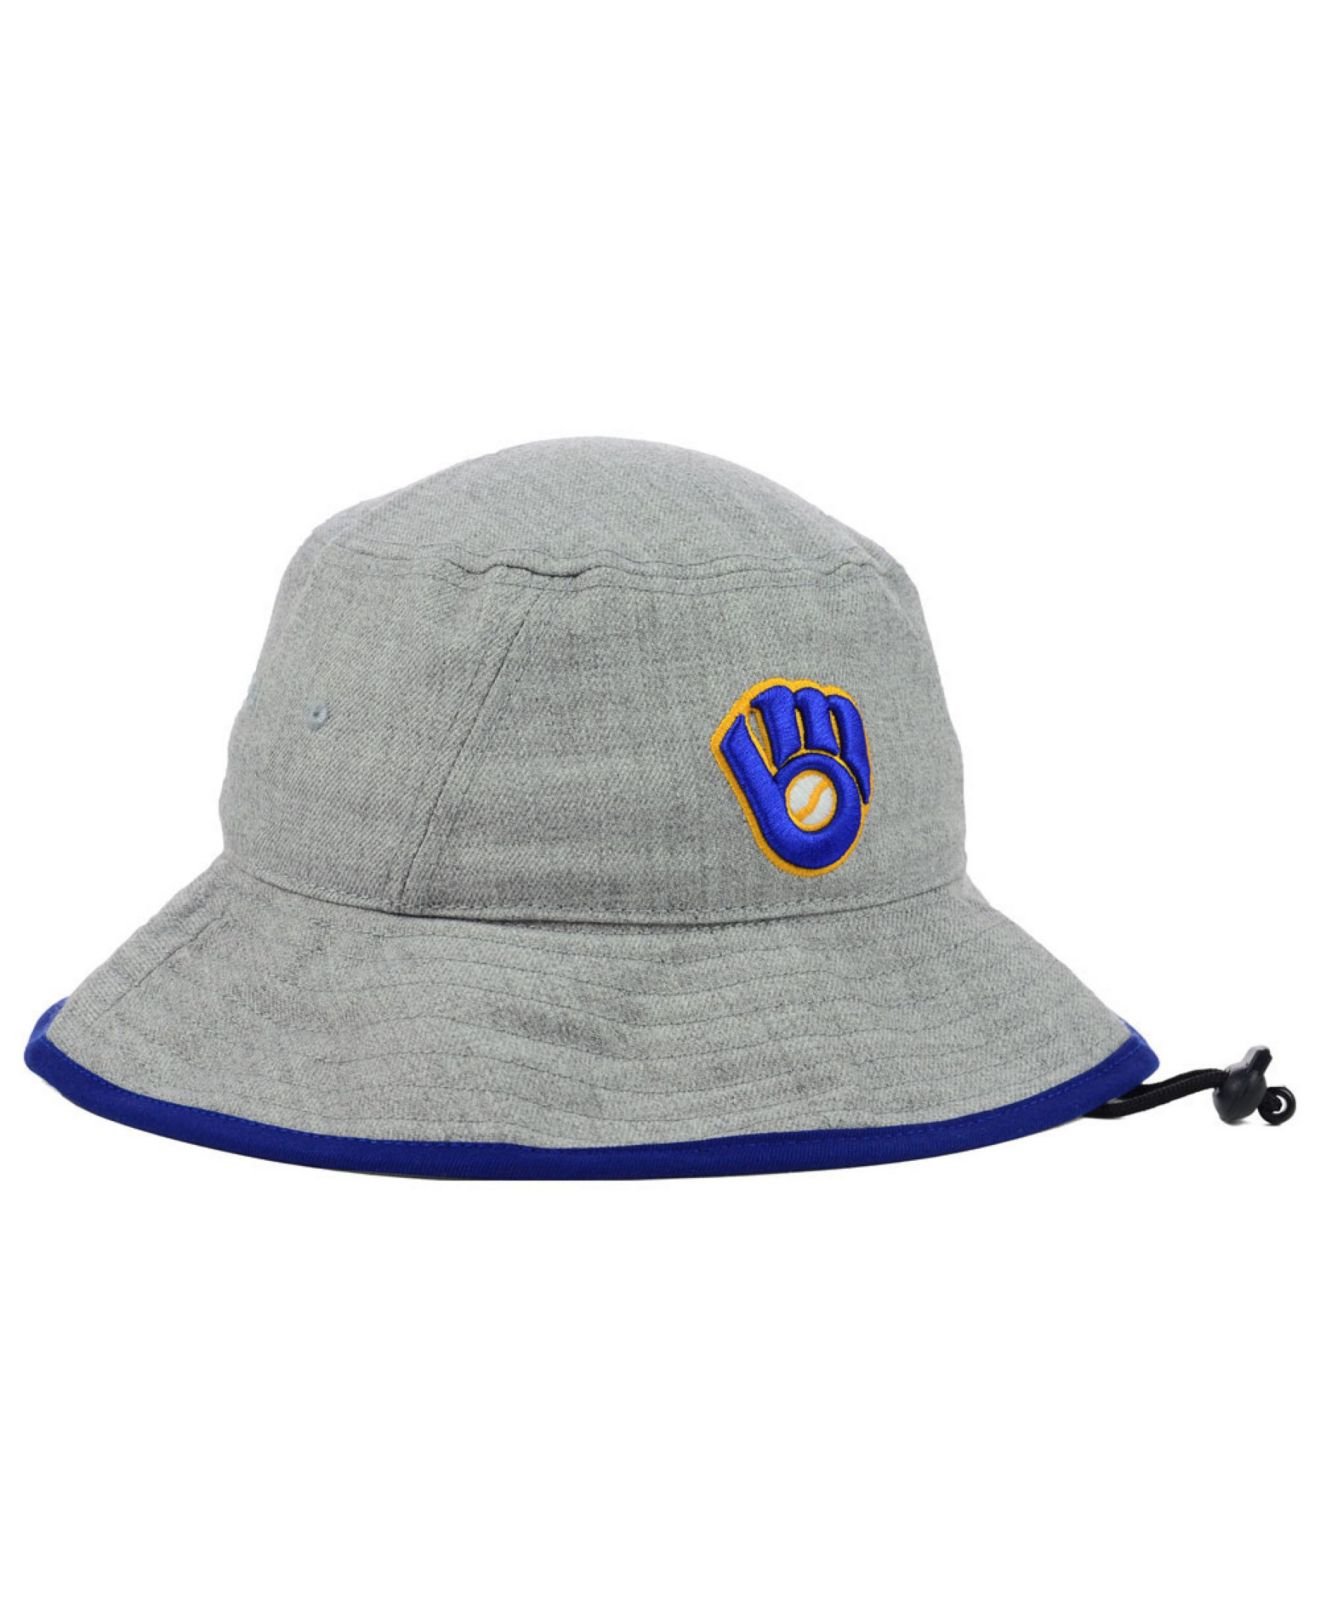 fb2186b06bd87 australia lyst ktz milwaukee brewers heather tipped bucket hat in gray for  men adf88 acb69